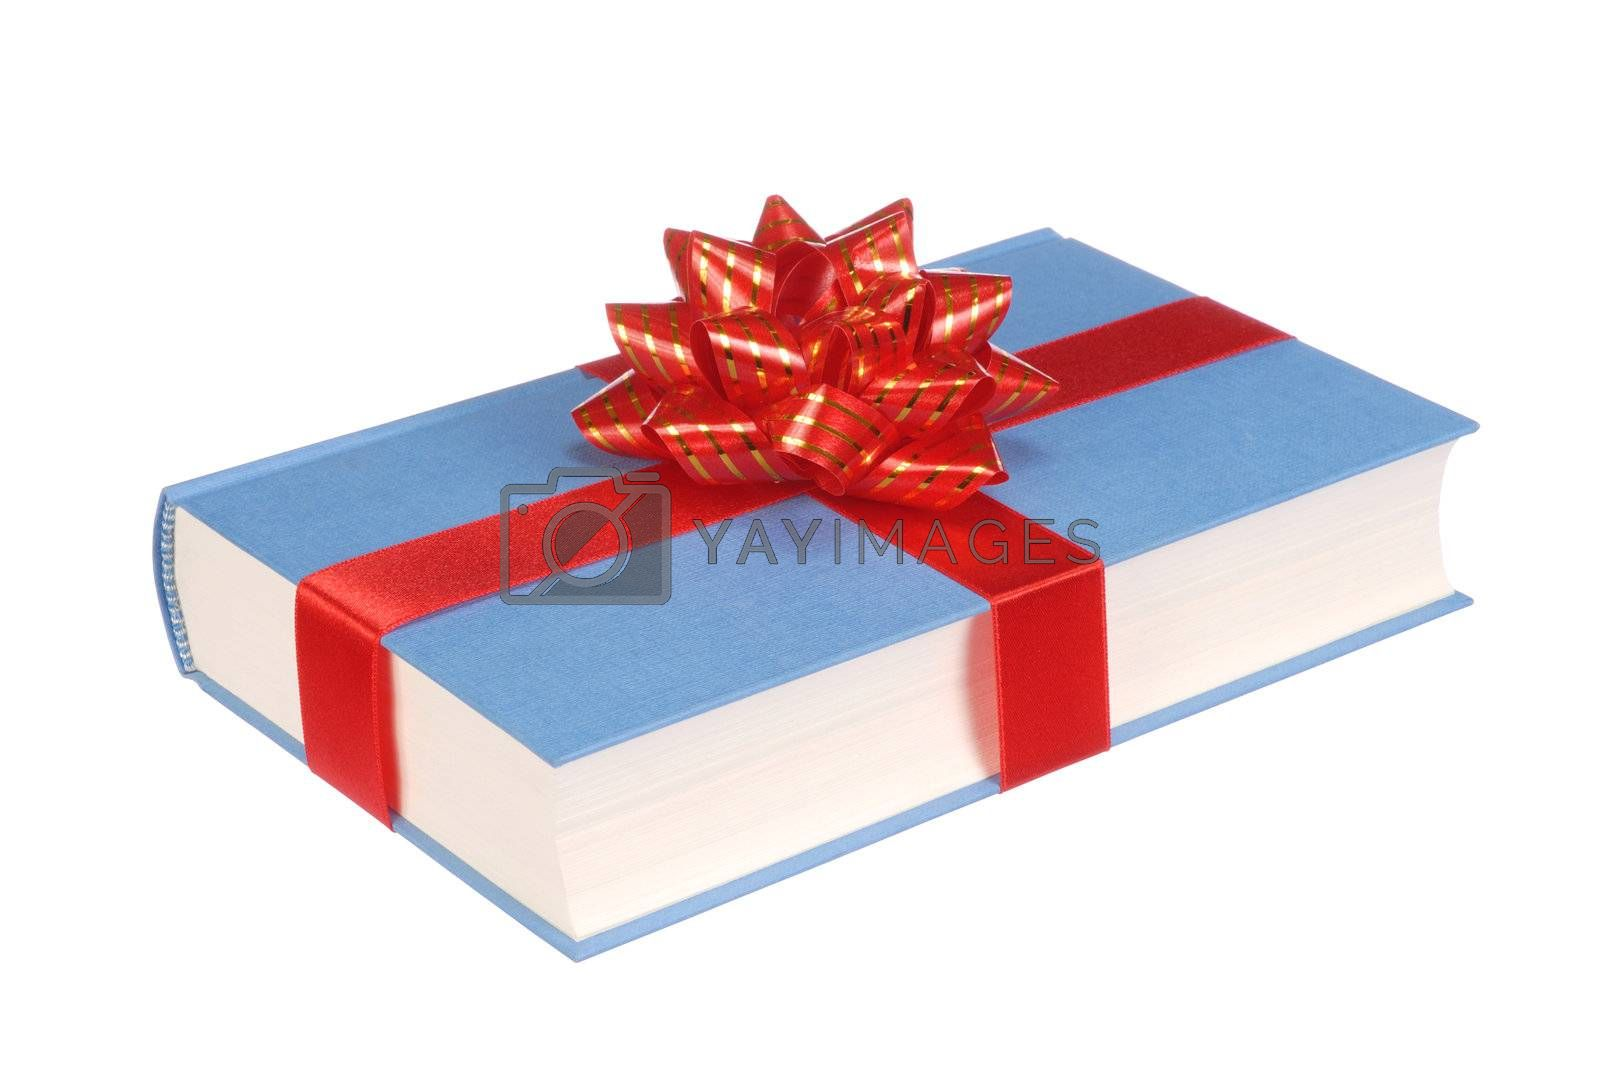 Book with ribbon and bow isolated on white